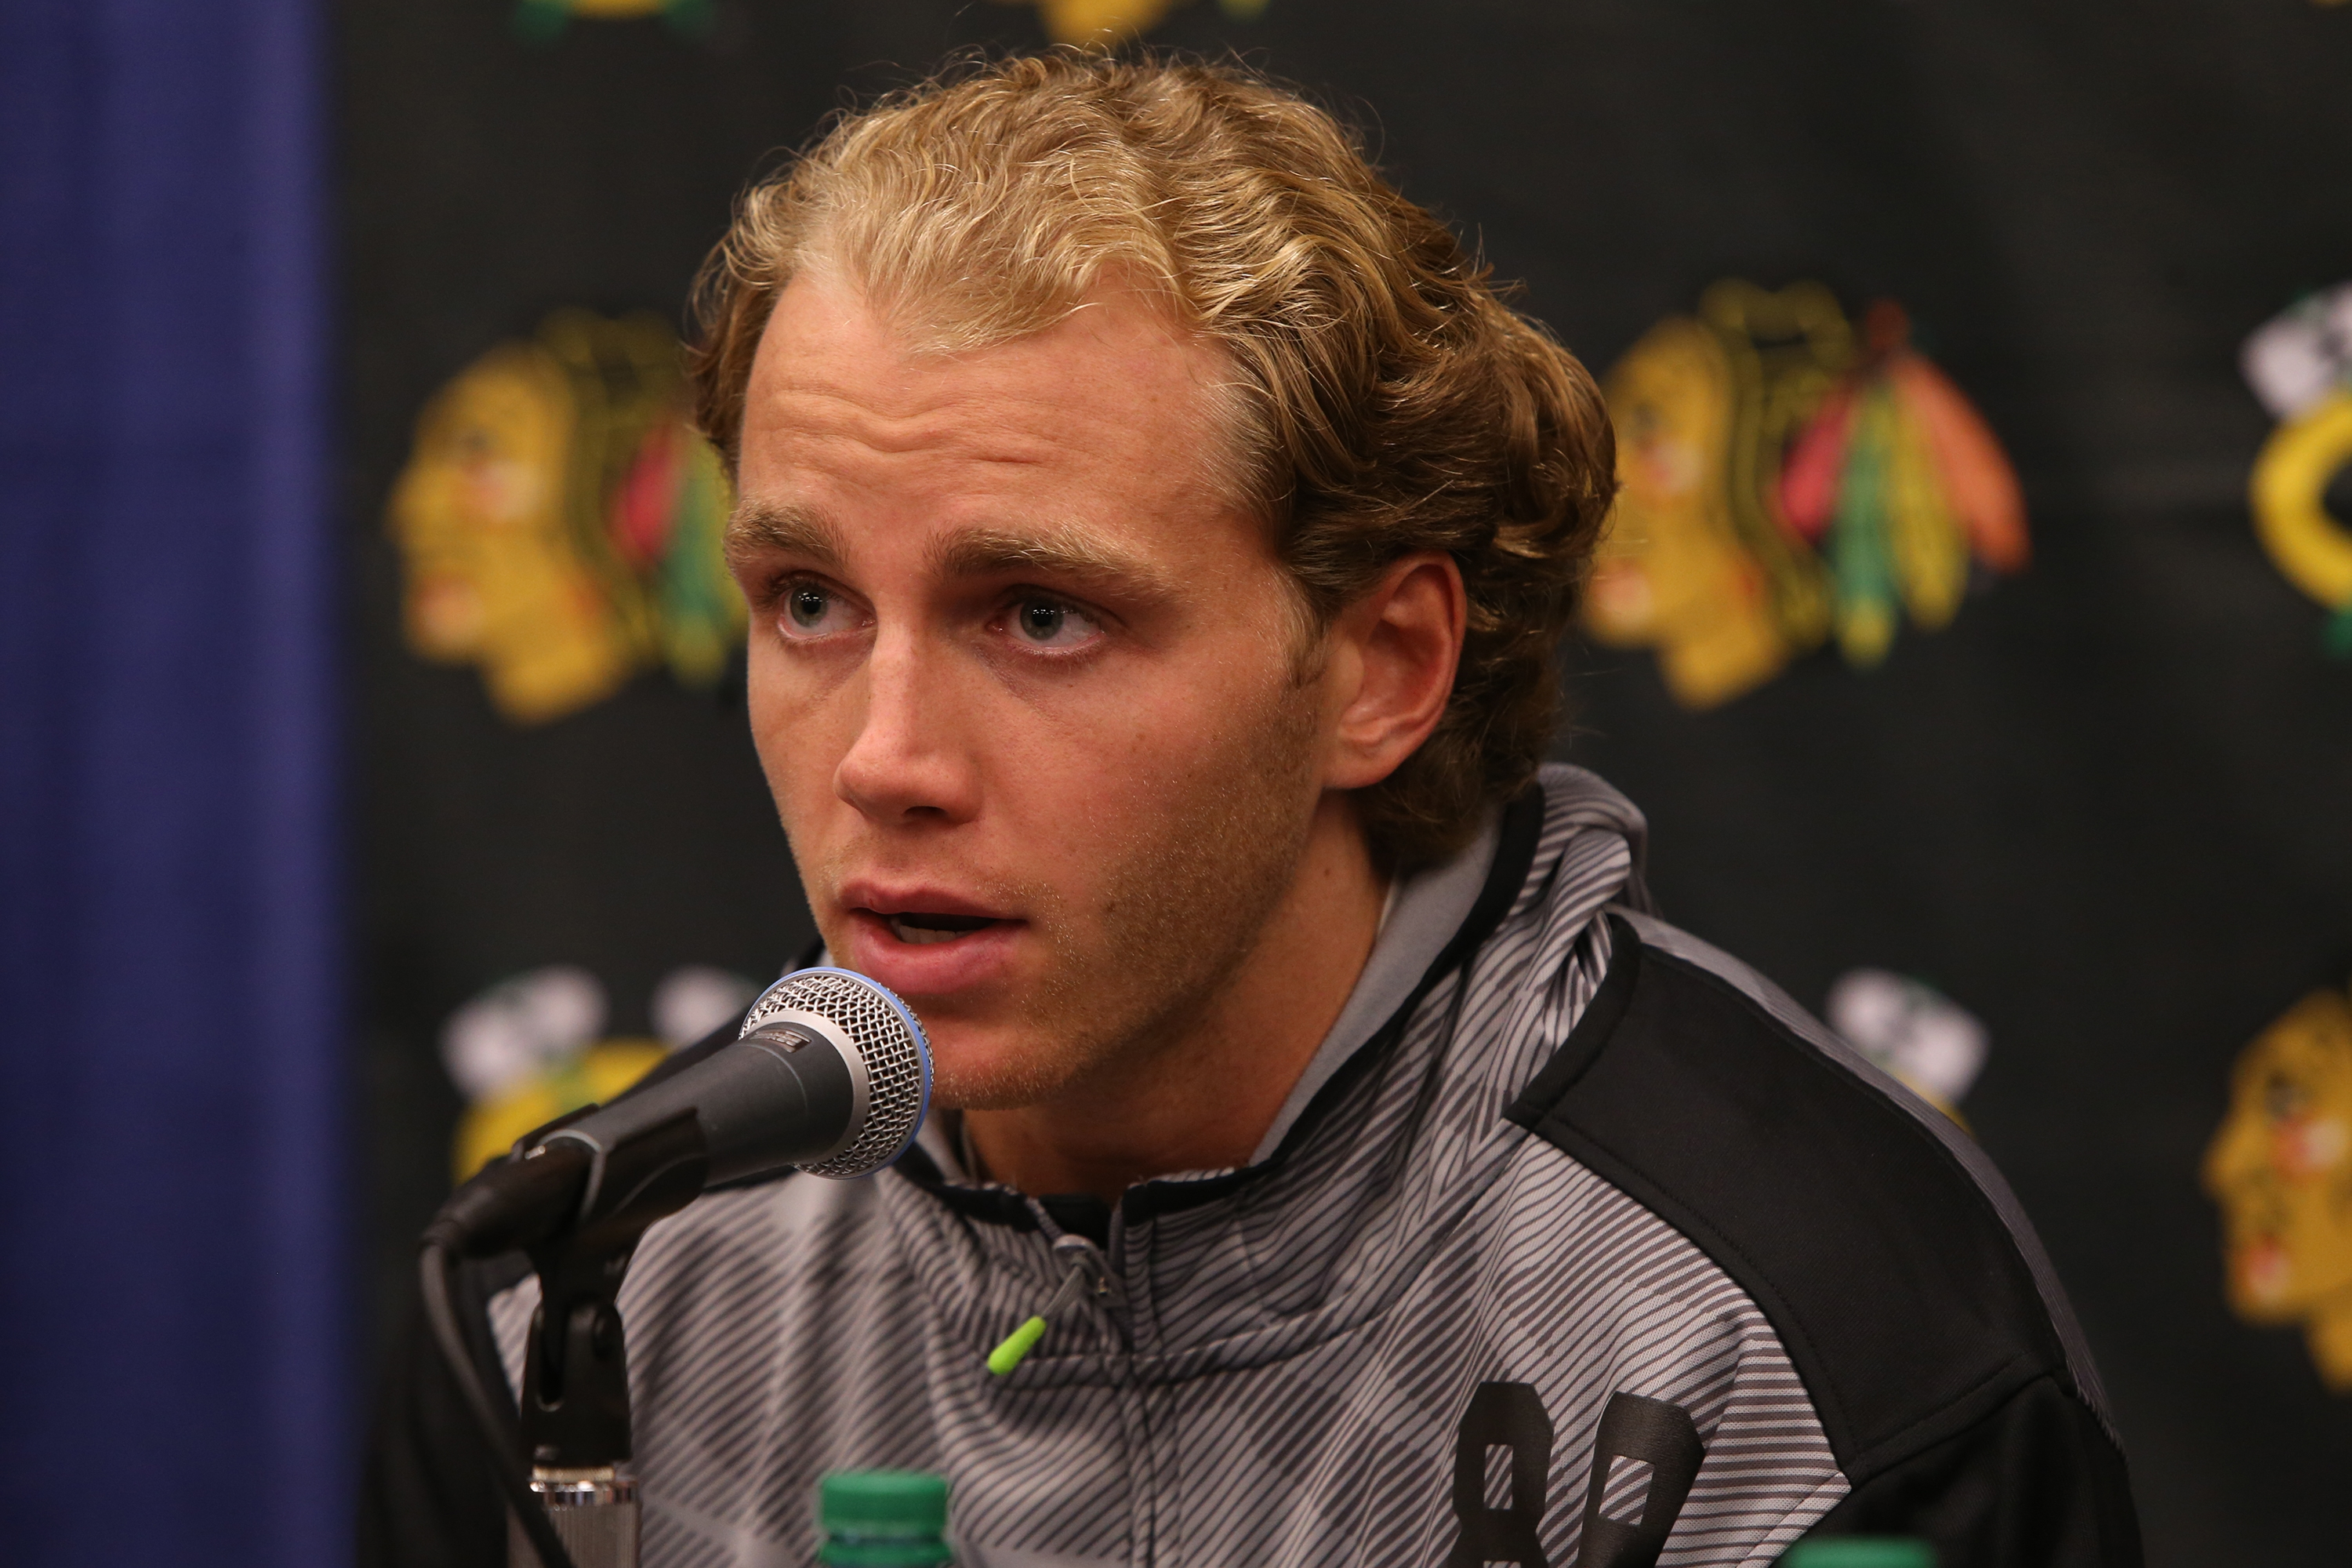 Patrick Kane speaks during a press conference before the start of the Chicago Blackhawks training camp on Thursday, Sept. 17, 2015, at the University of Notre Dame's Compton Family Ice Center in South Bend, Ind. (Antonio Perez/Chicago Tribune/TNS)